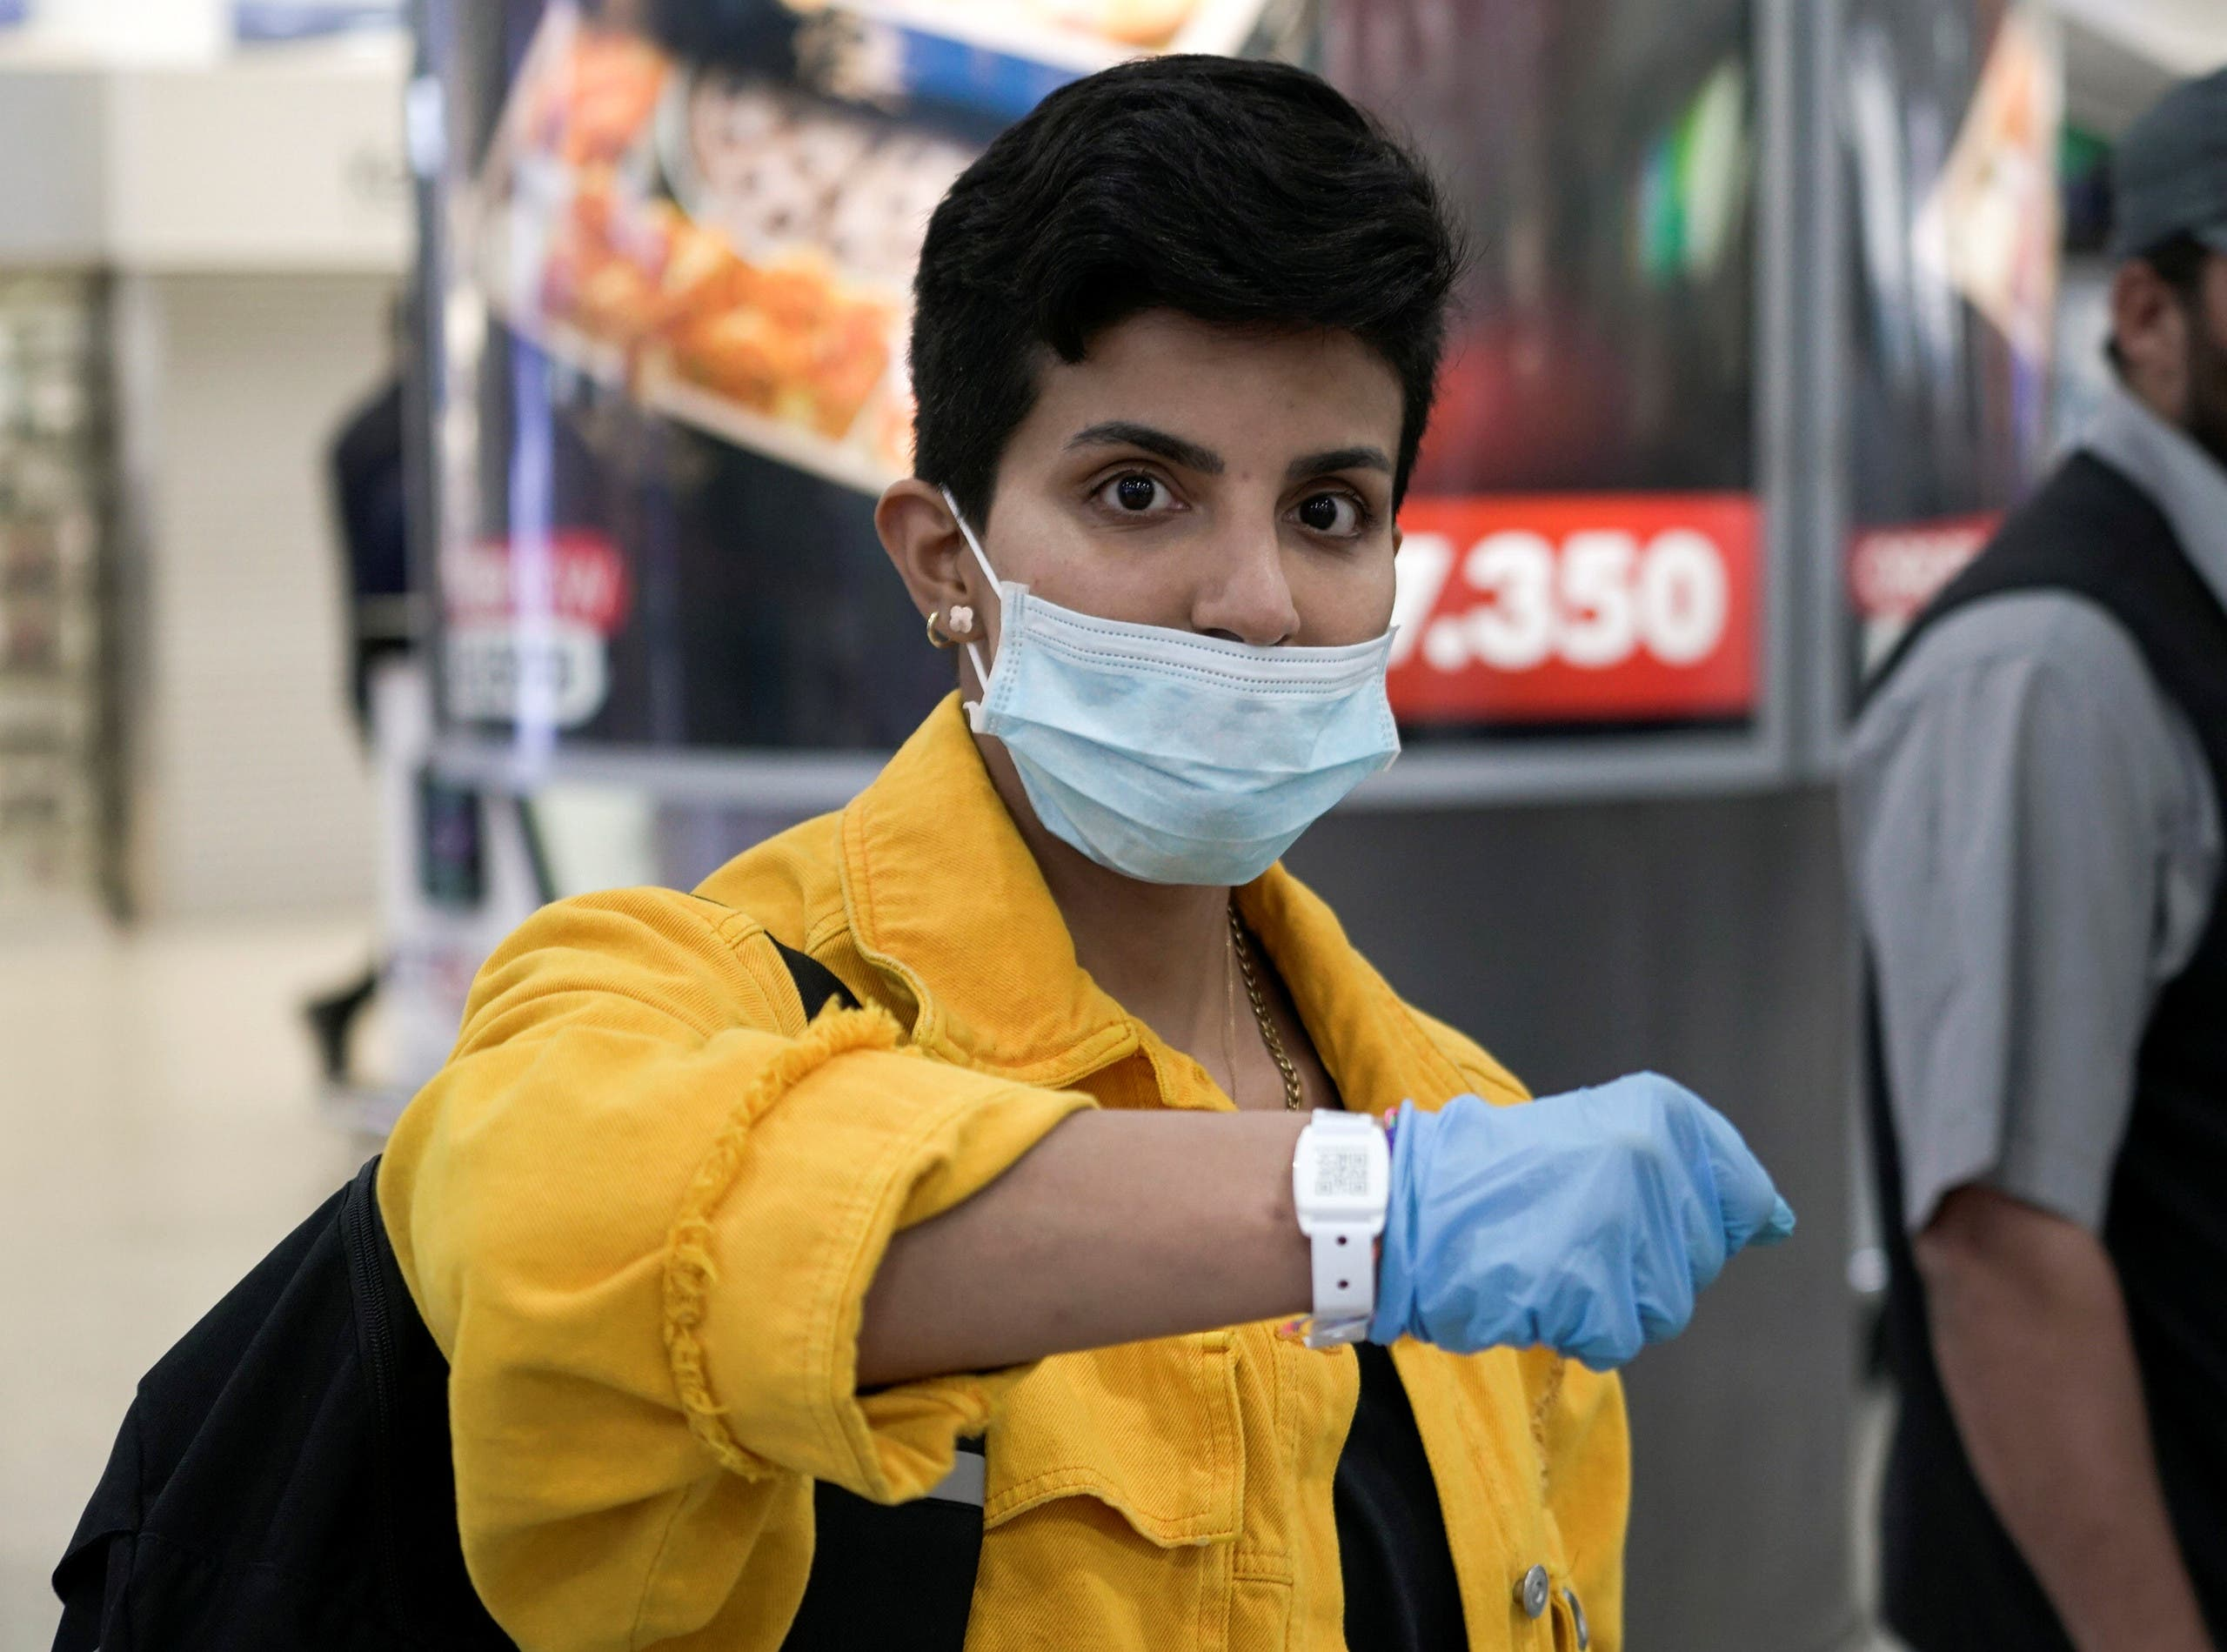 A Kuwaiti woman wearing a protective face mask poses as she shows her quarantine tracking bracelet upon her arrival from Amman to Kuwait Airport, following the outbreak of the coronavirus disease (COVID-19), in Kuwait City, Kuwait April 21, 2020. (Reuters)